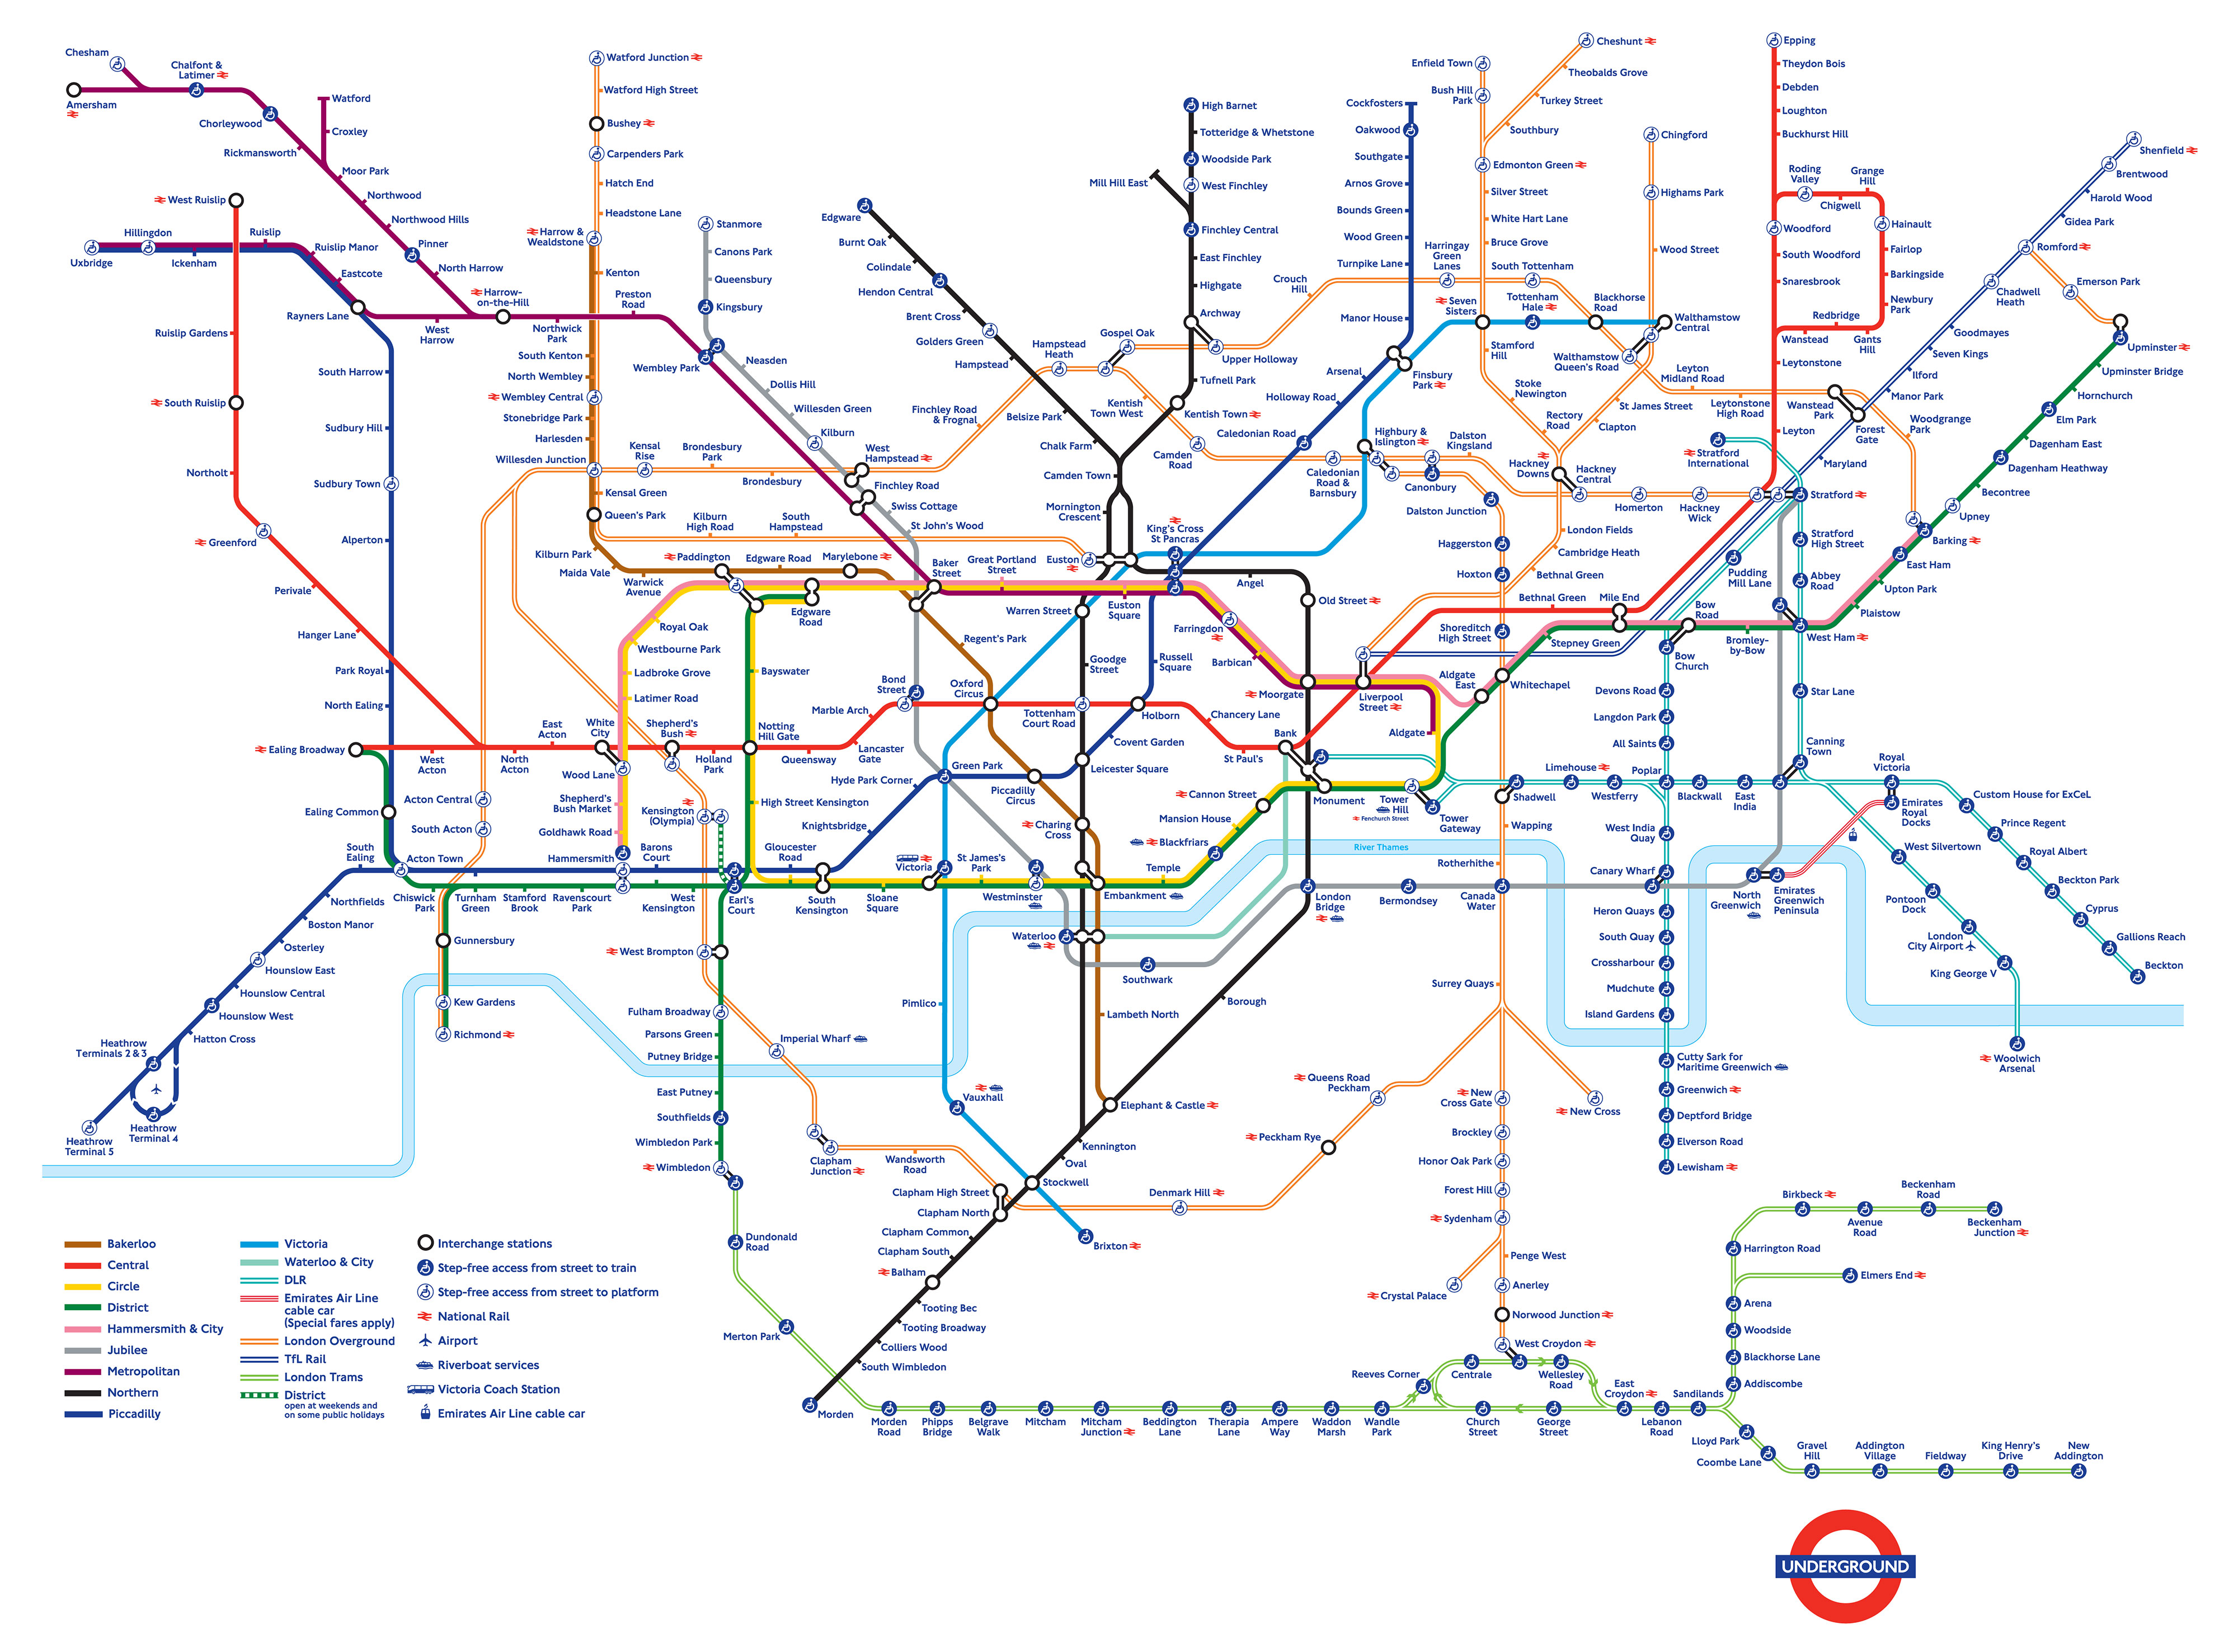 Tube Map Of London.London Underground Tube Map Wallpaper